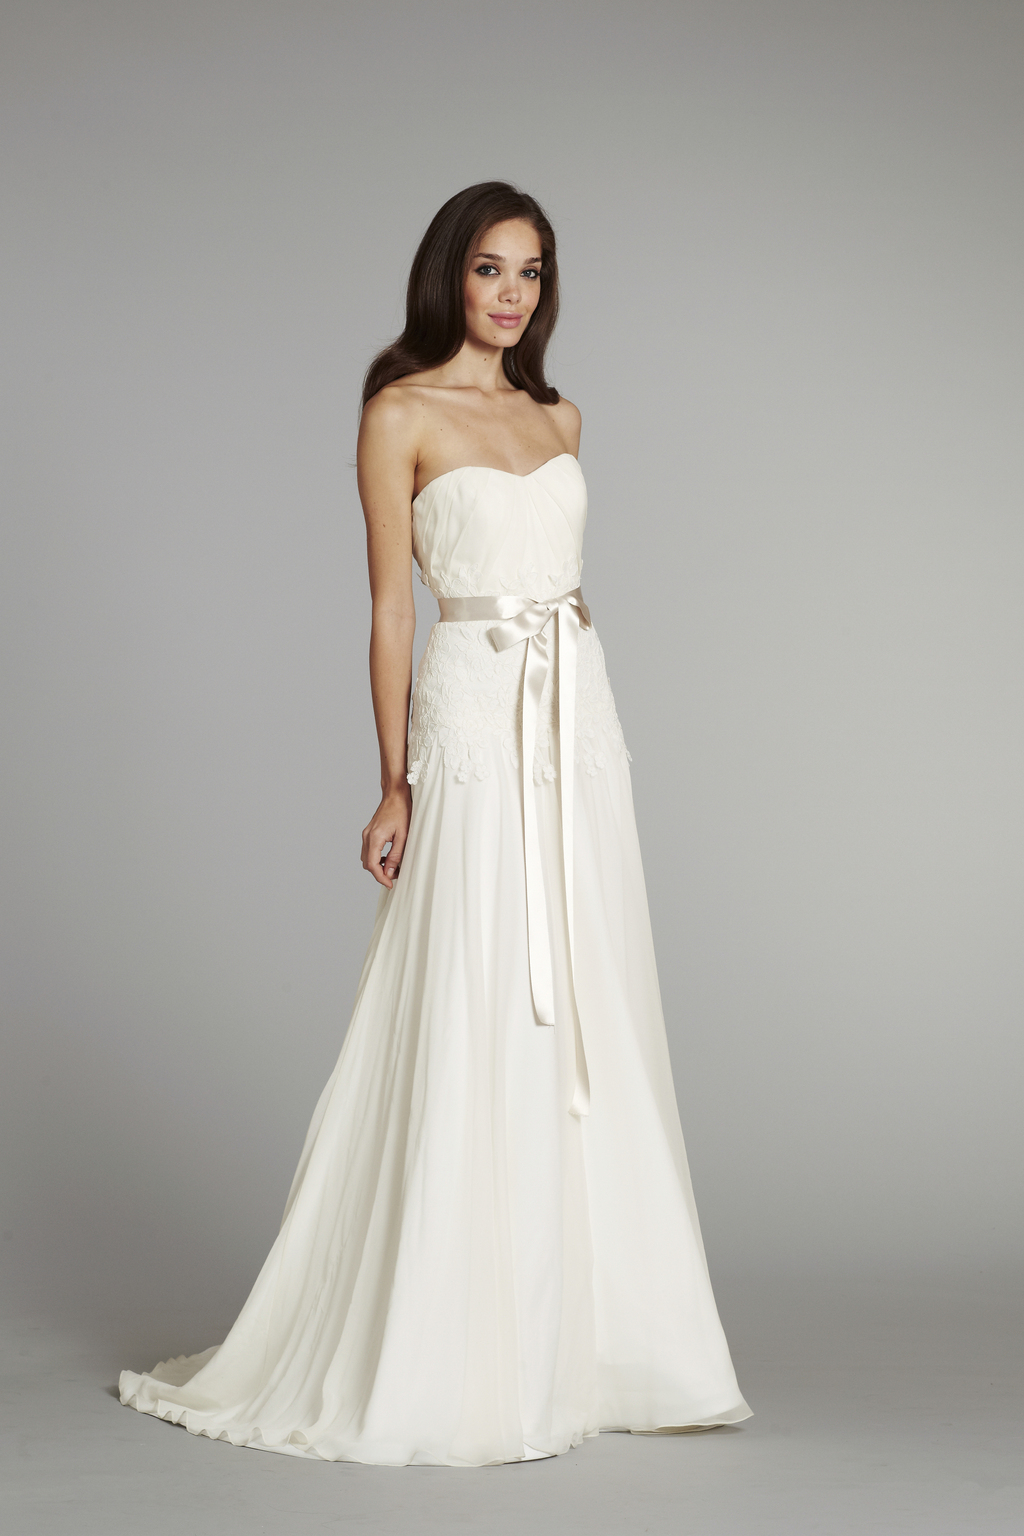 new bridal gowns fall 2012 wedding dress hayley paige for JLM couture Prima